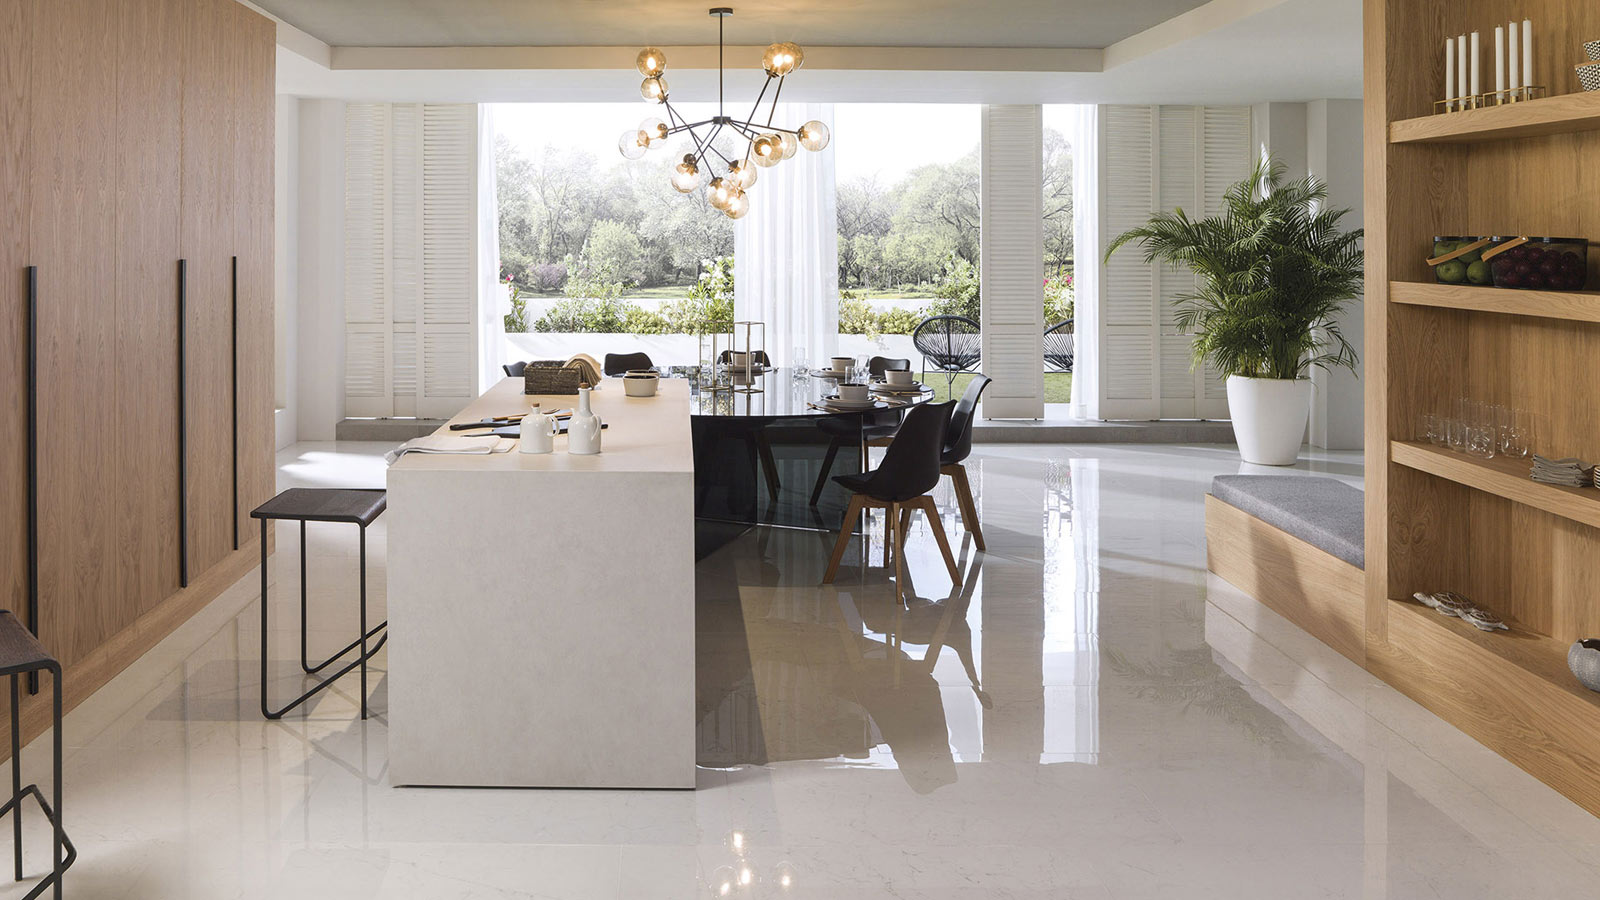 Premium kitchens with the PORCELANOSA Grupo seal